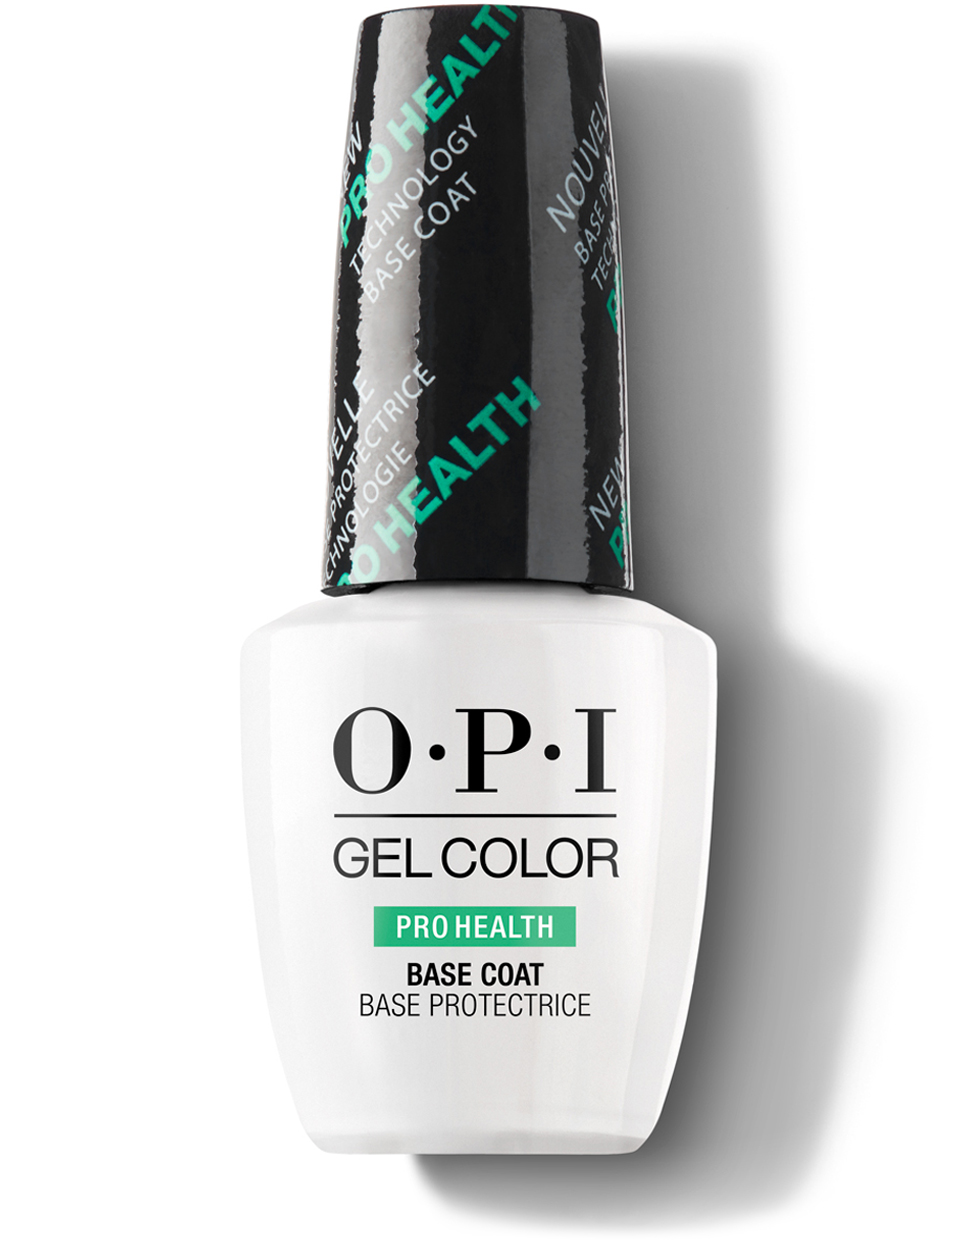 gelcolor prohealth base coat opi